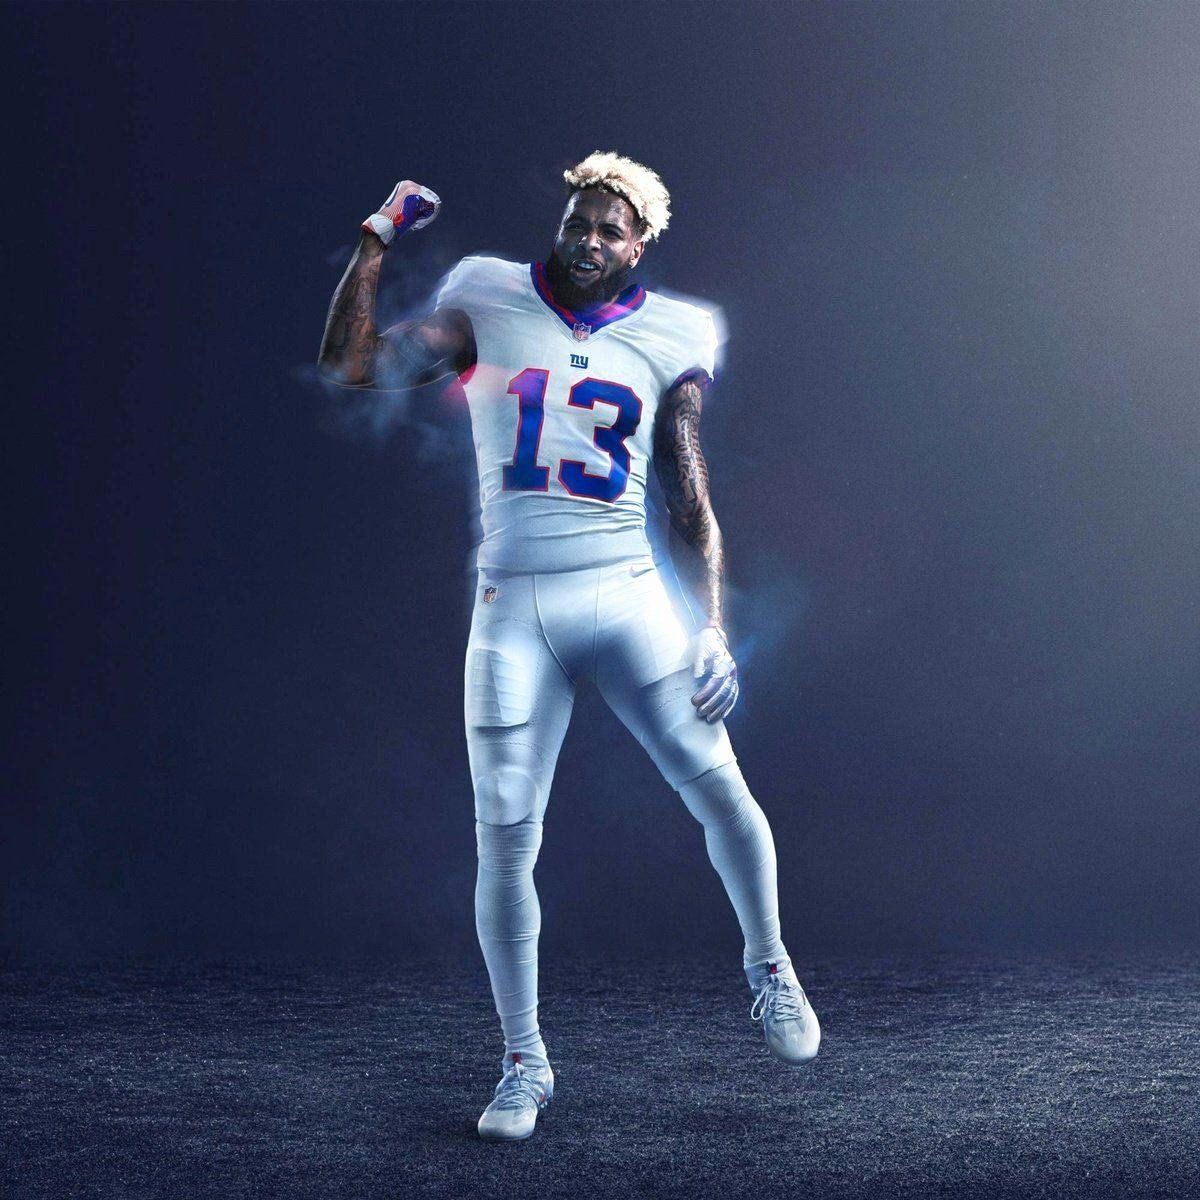 Odell Beckham Jr Coloring Page New The Philadelphia Eagles And New York Giants Unveil Latest In 2020 Beckham Jr Odell Beckham Jr Giants Football